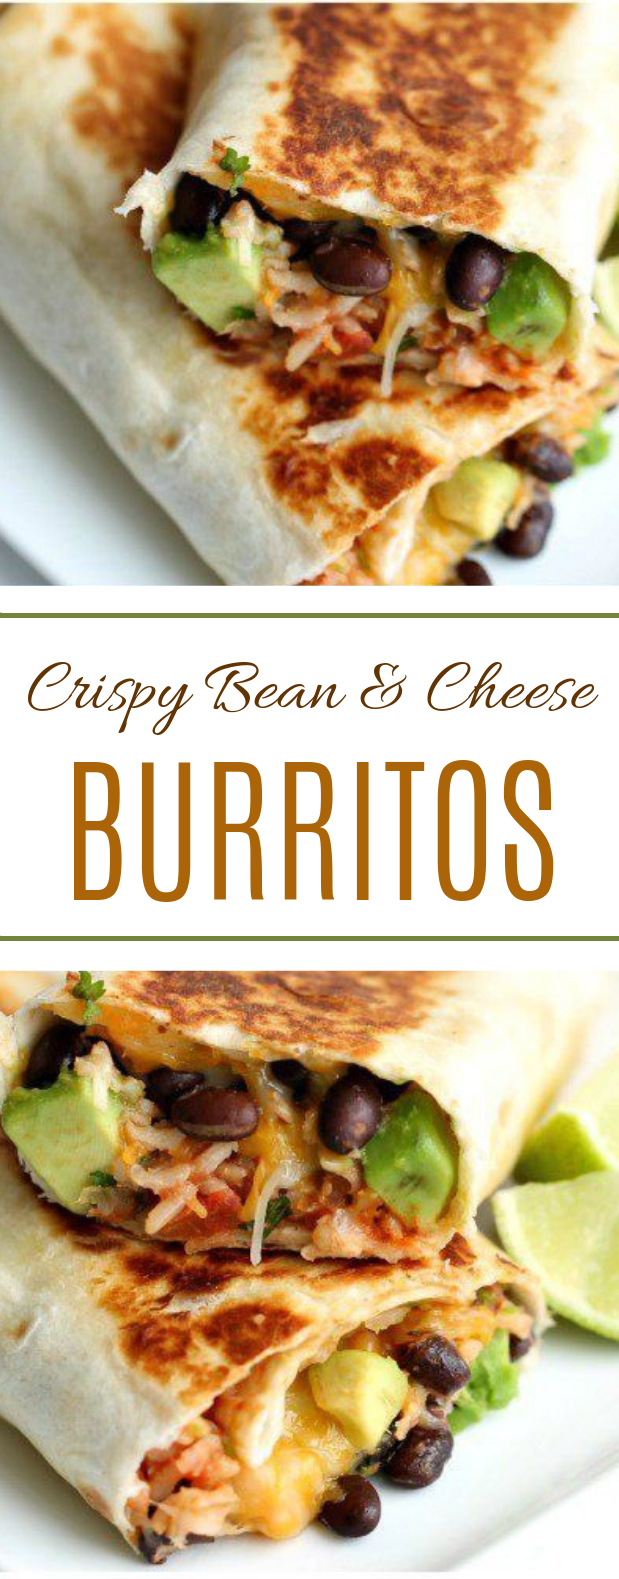 Crispy Bean and Cheese Burritos #lunch #deliciousmeal